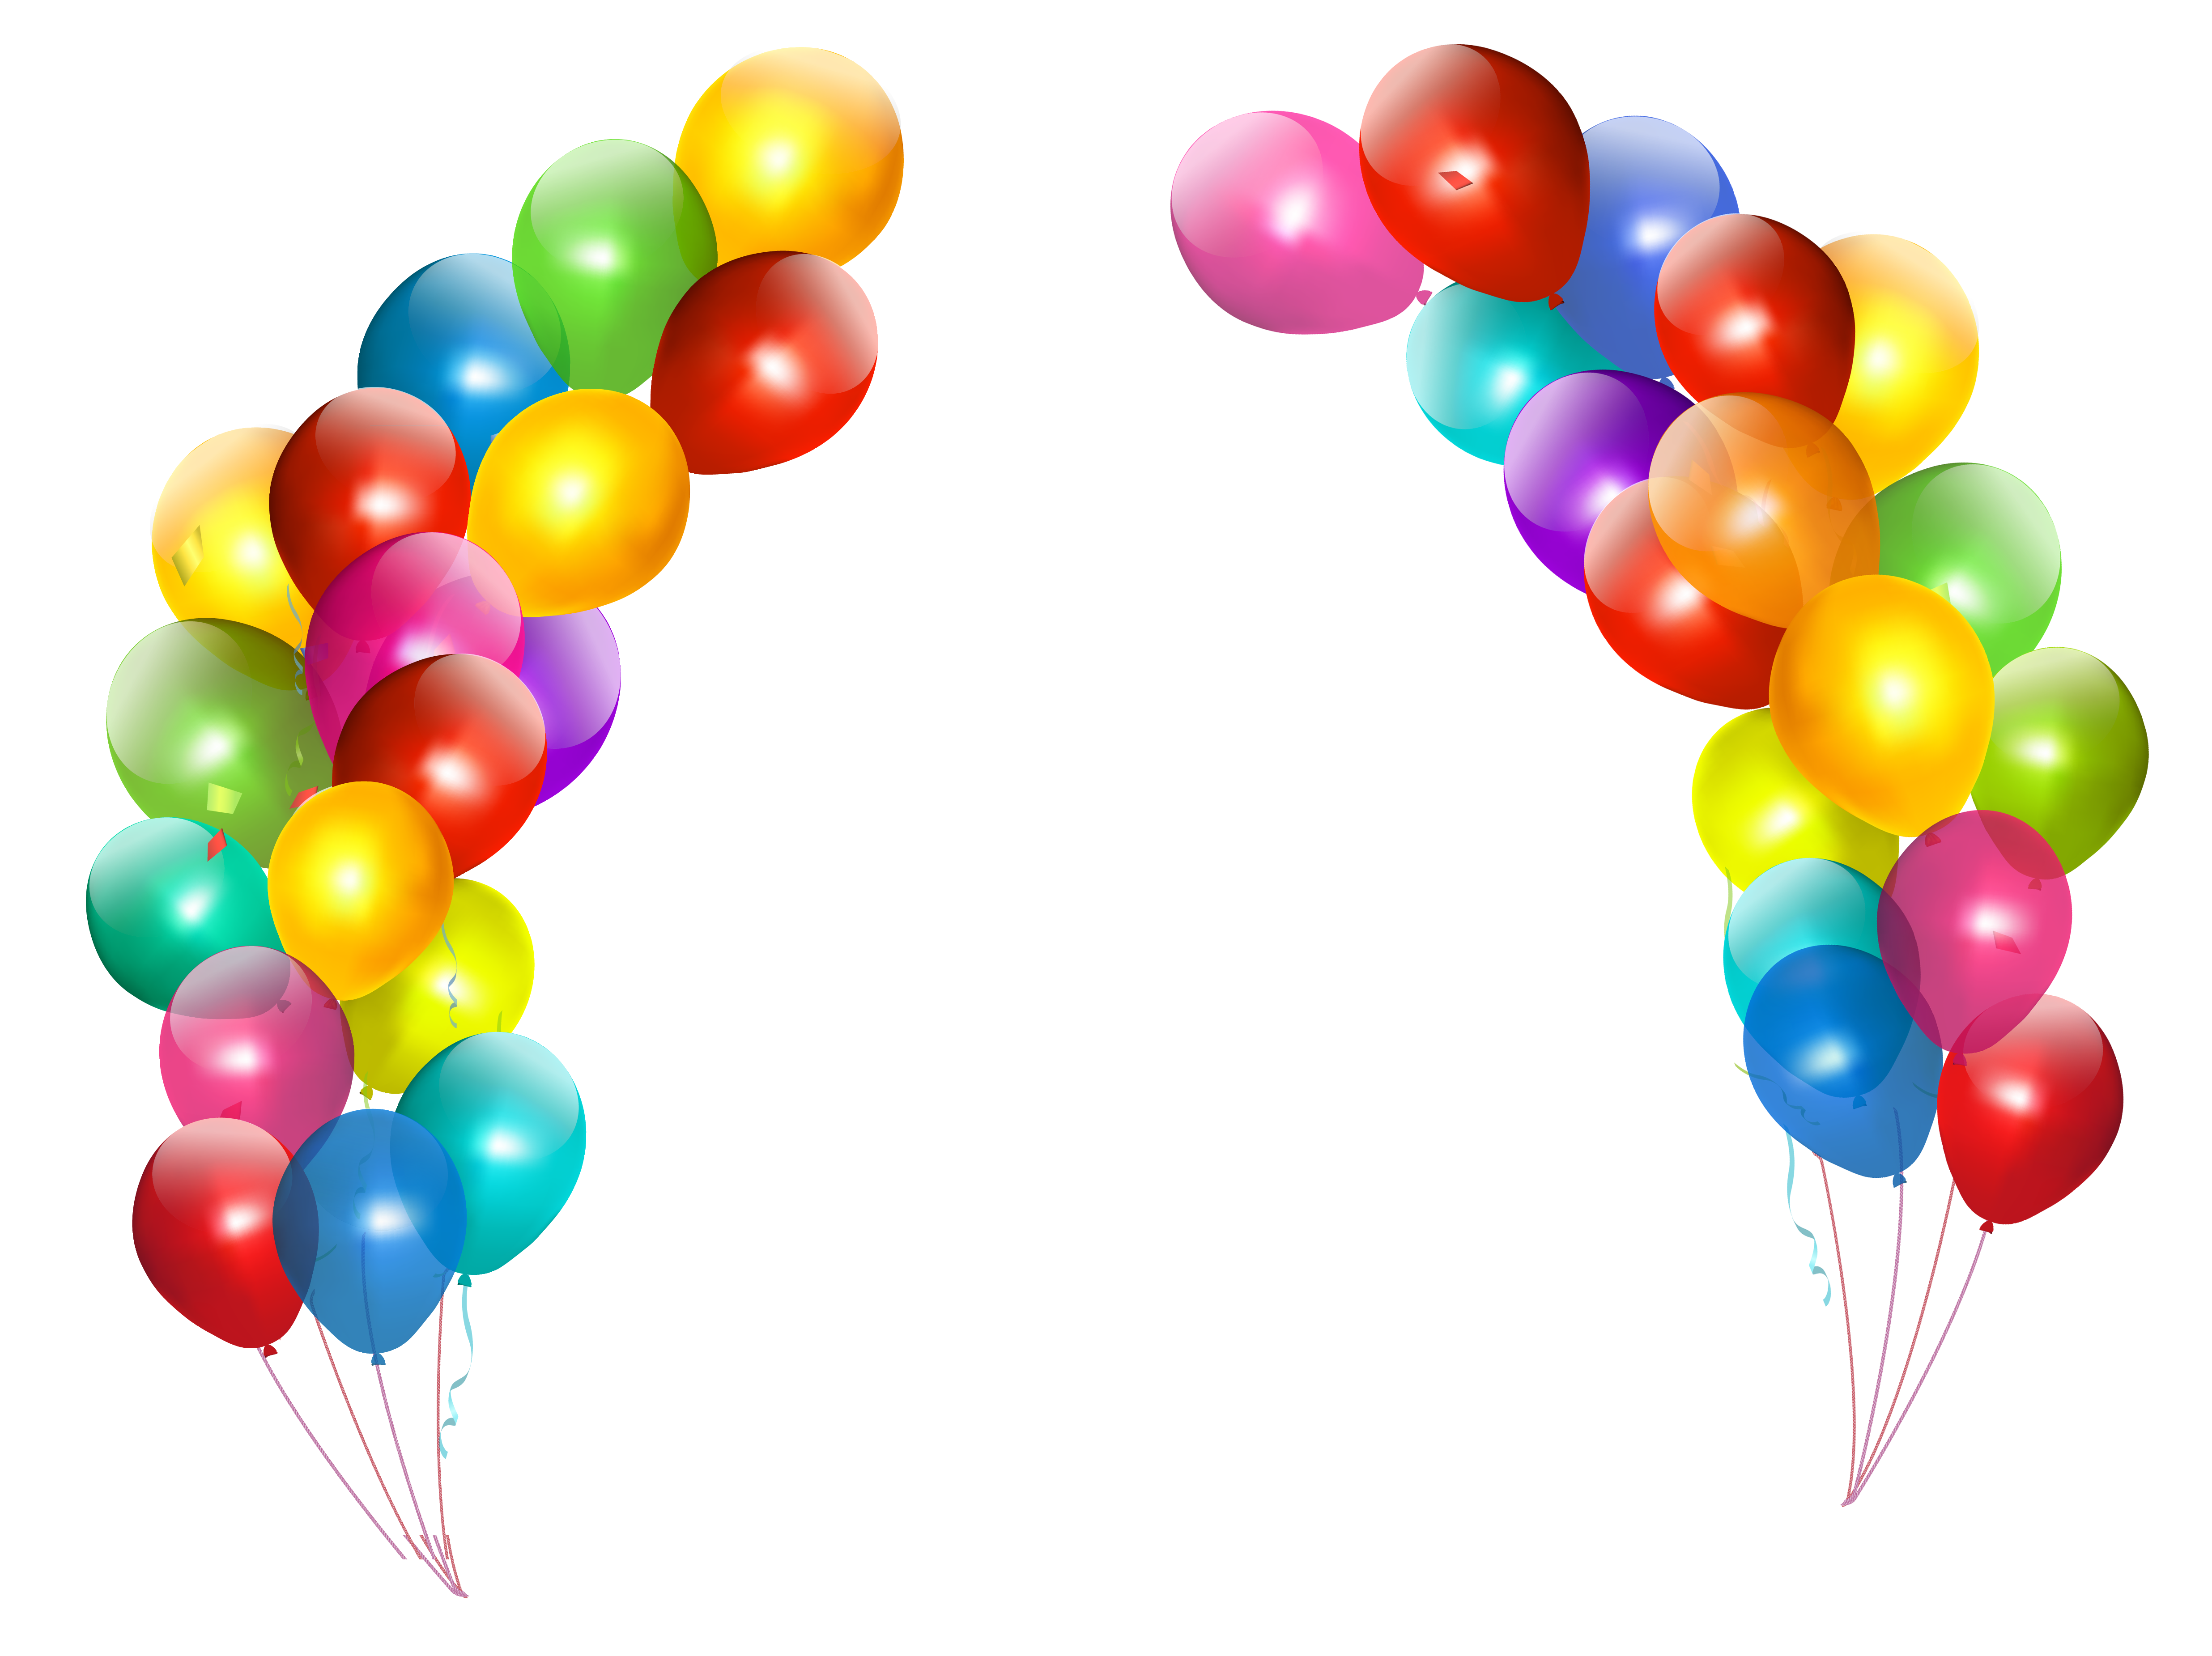 4944x3702 Colorful Balloons Decor Transparent PNG Clipartu200b Gallery